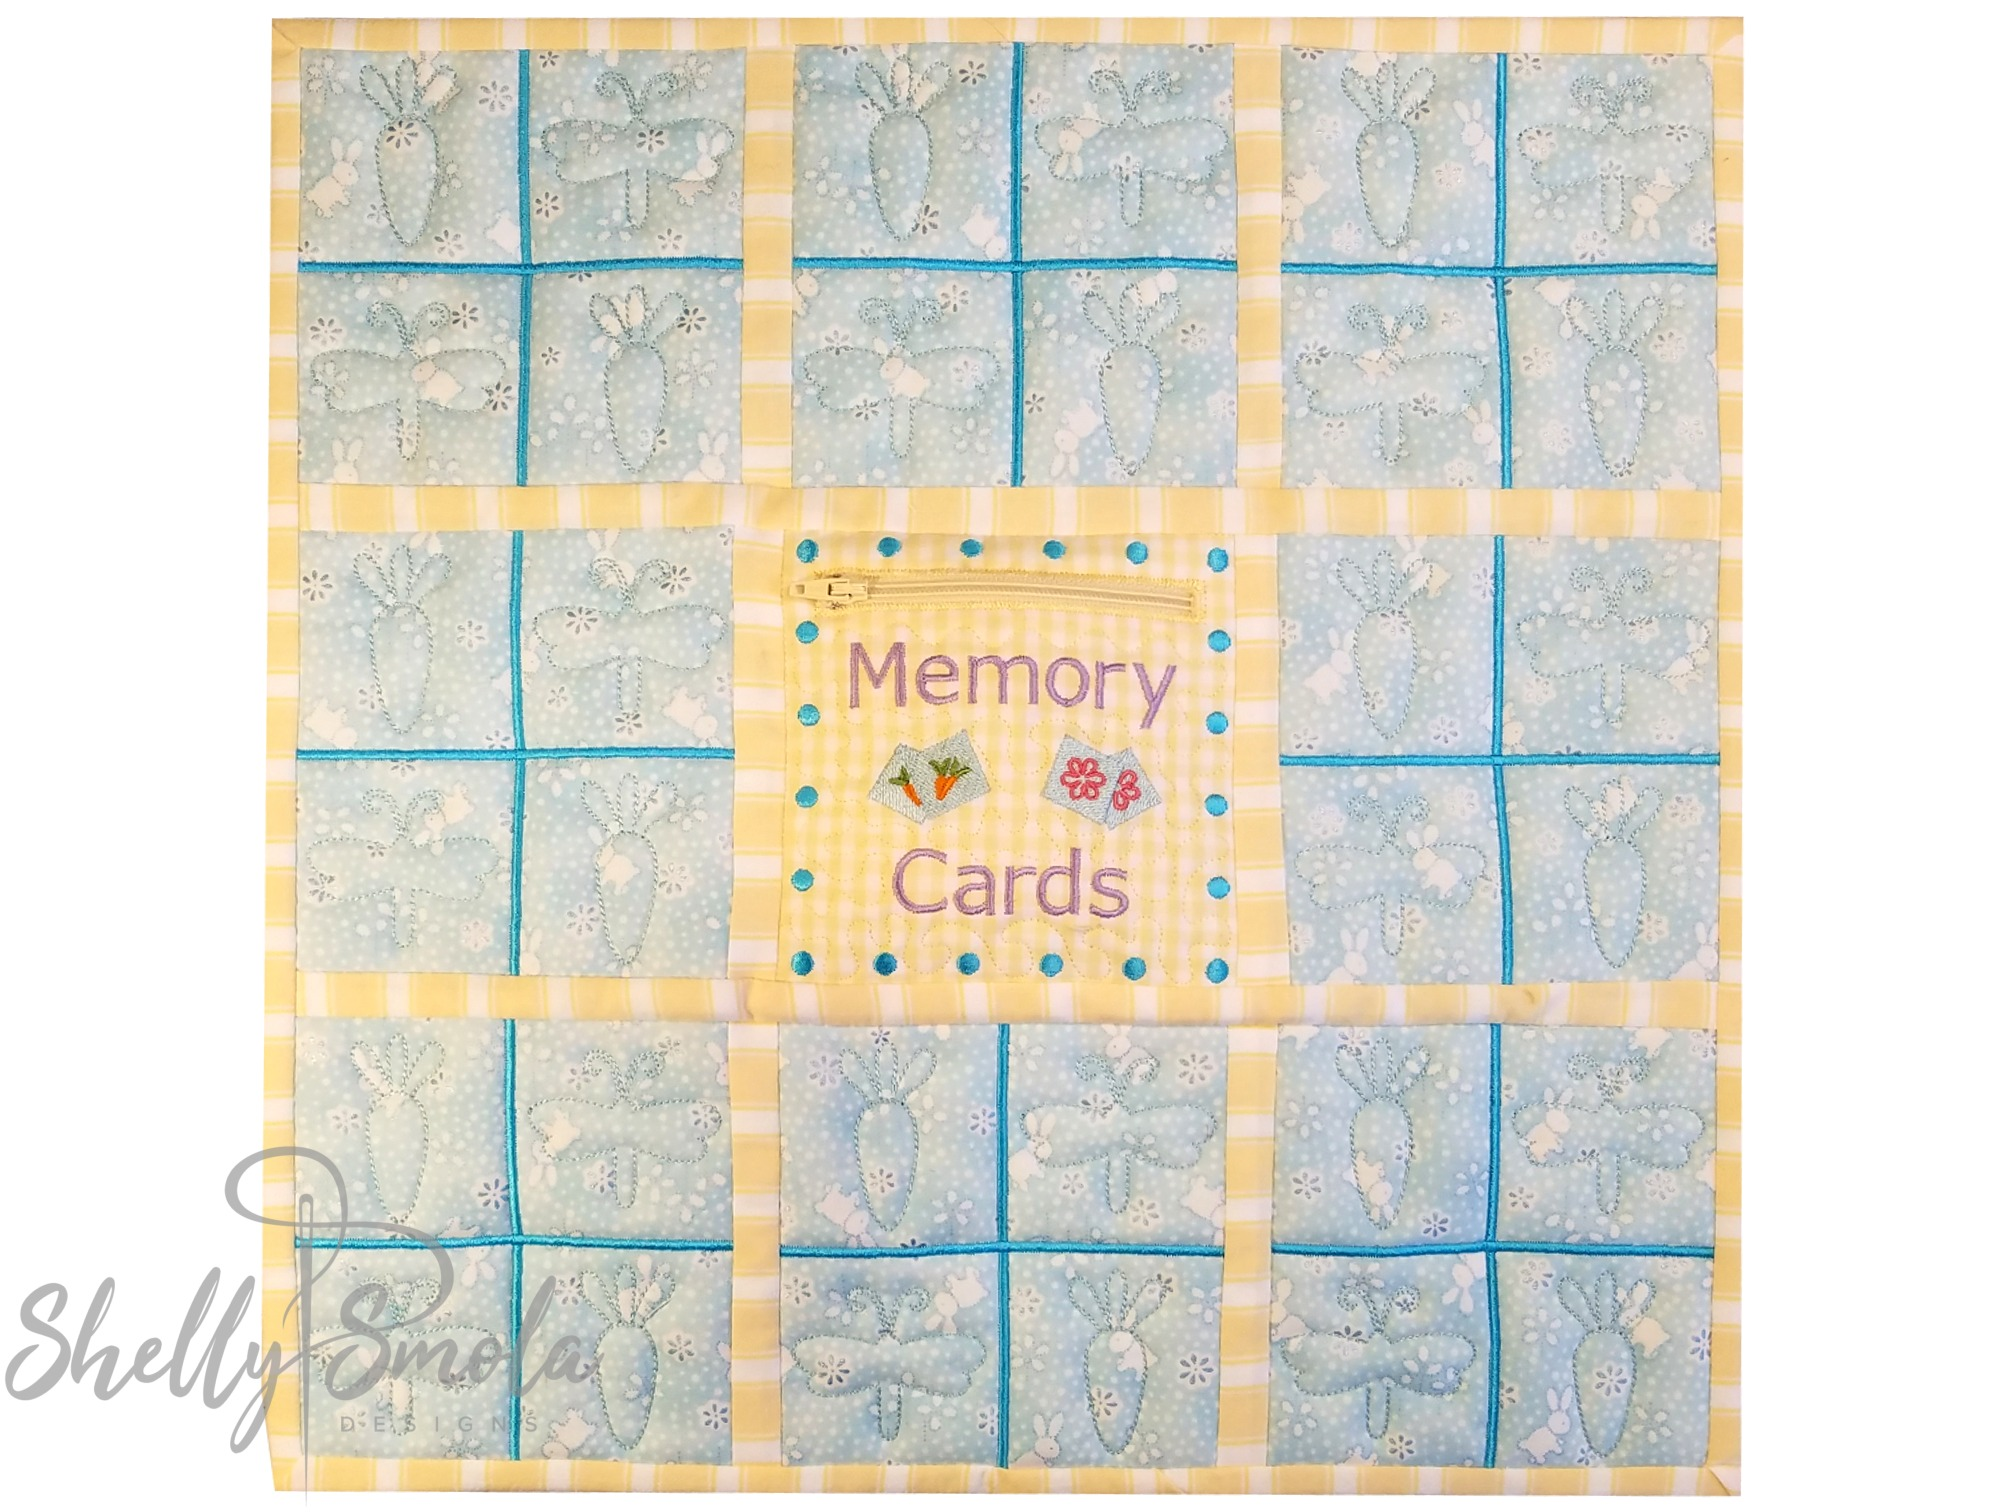 Easter Memory Game Quilt by Shelly Smola